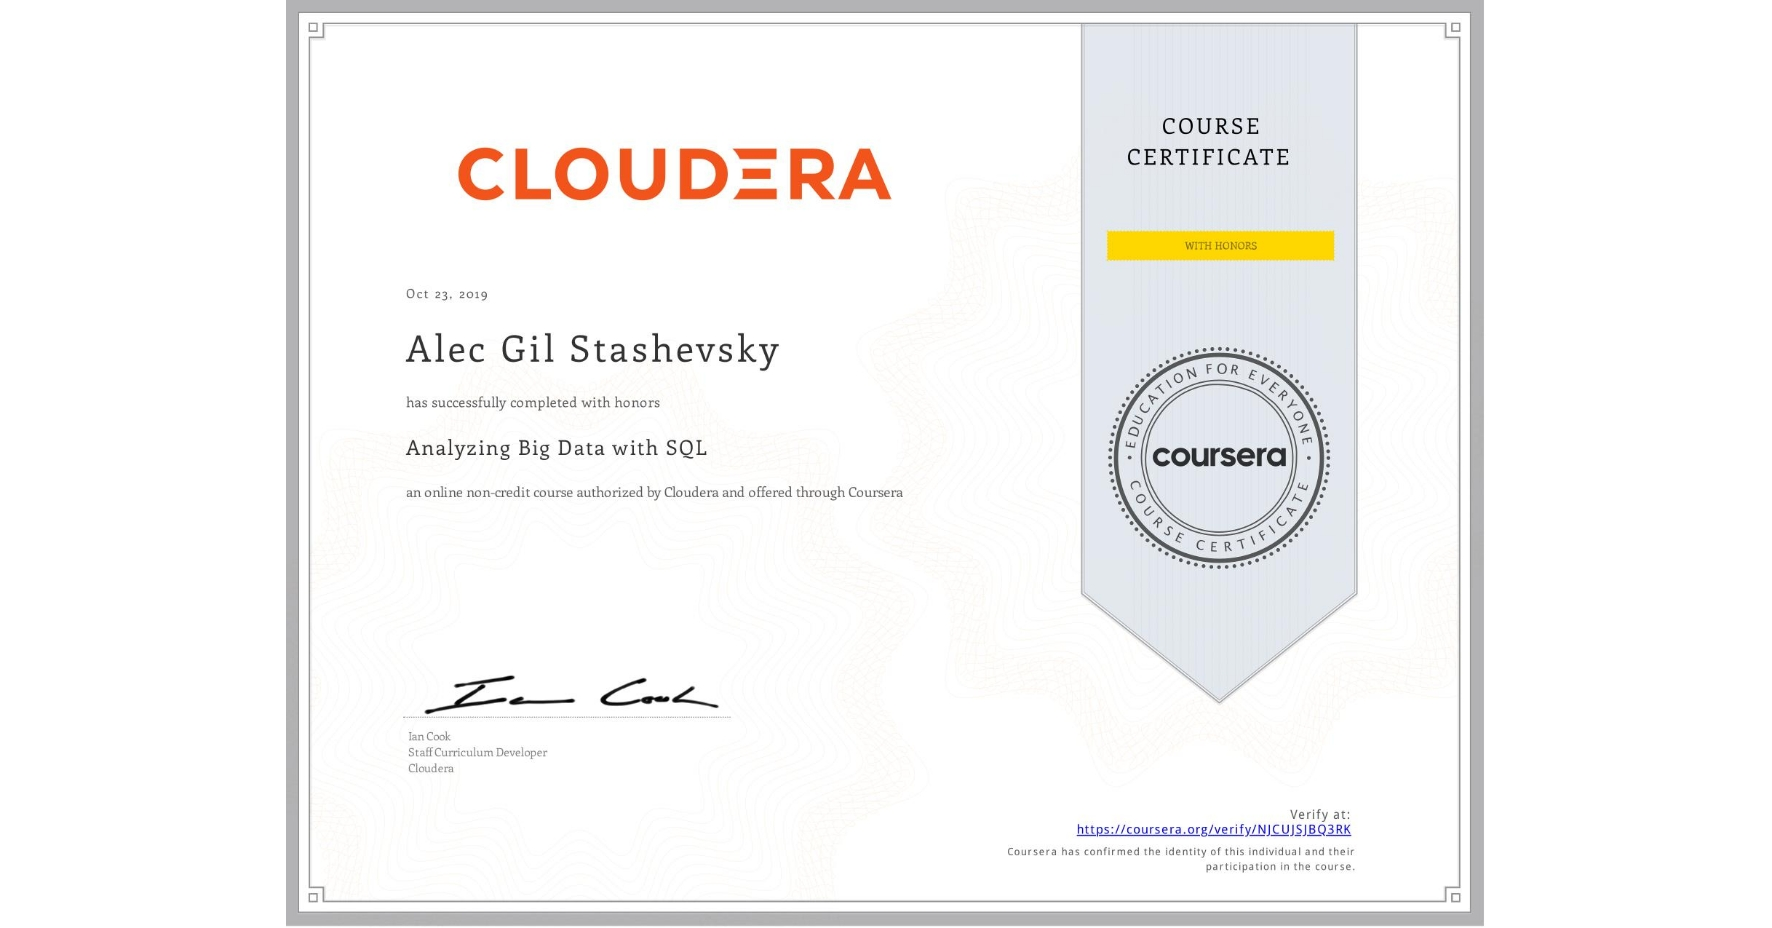 View certificate for Alec Gil Stashevsky, Analyzing Big Data with SQL, an online non-credit course authorized by Cloudera and offered through Coursera